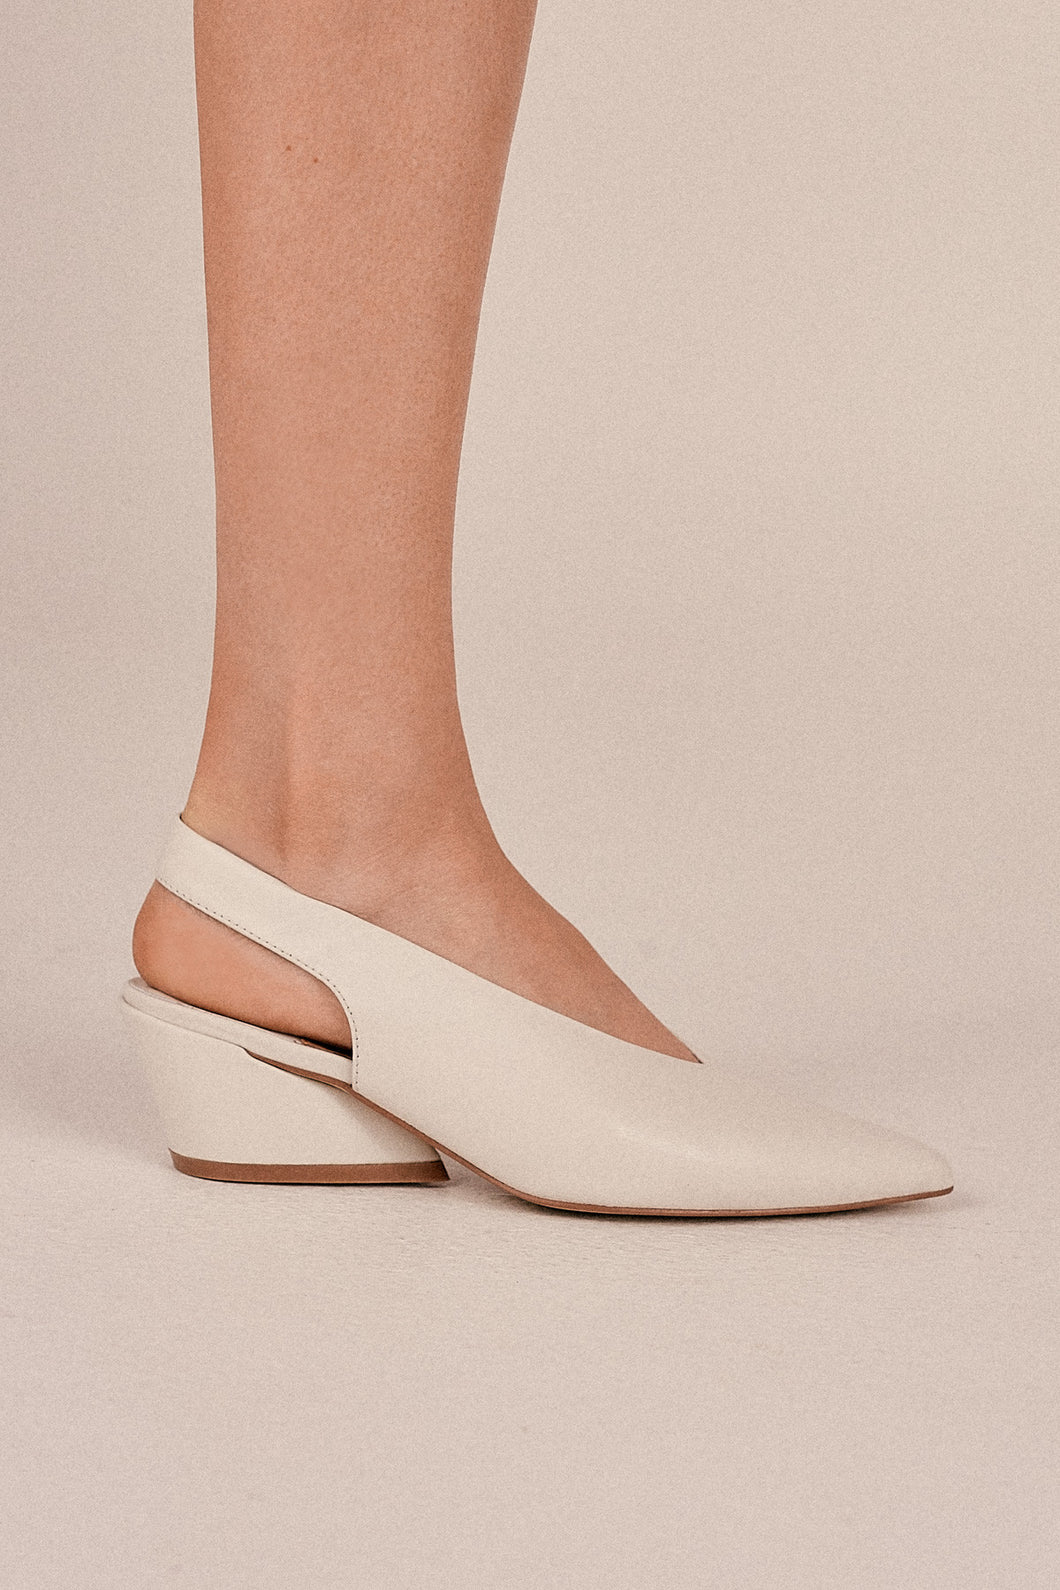 JAGGAR The Label Aim Leather Slingback Ivory